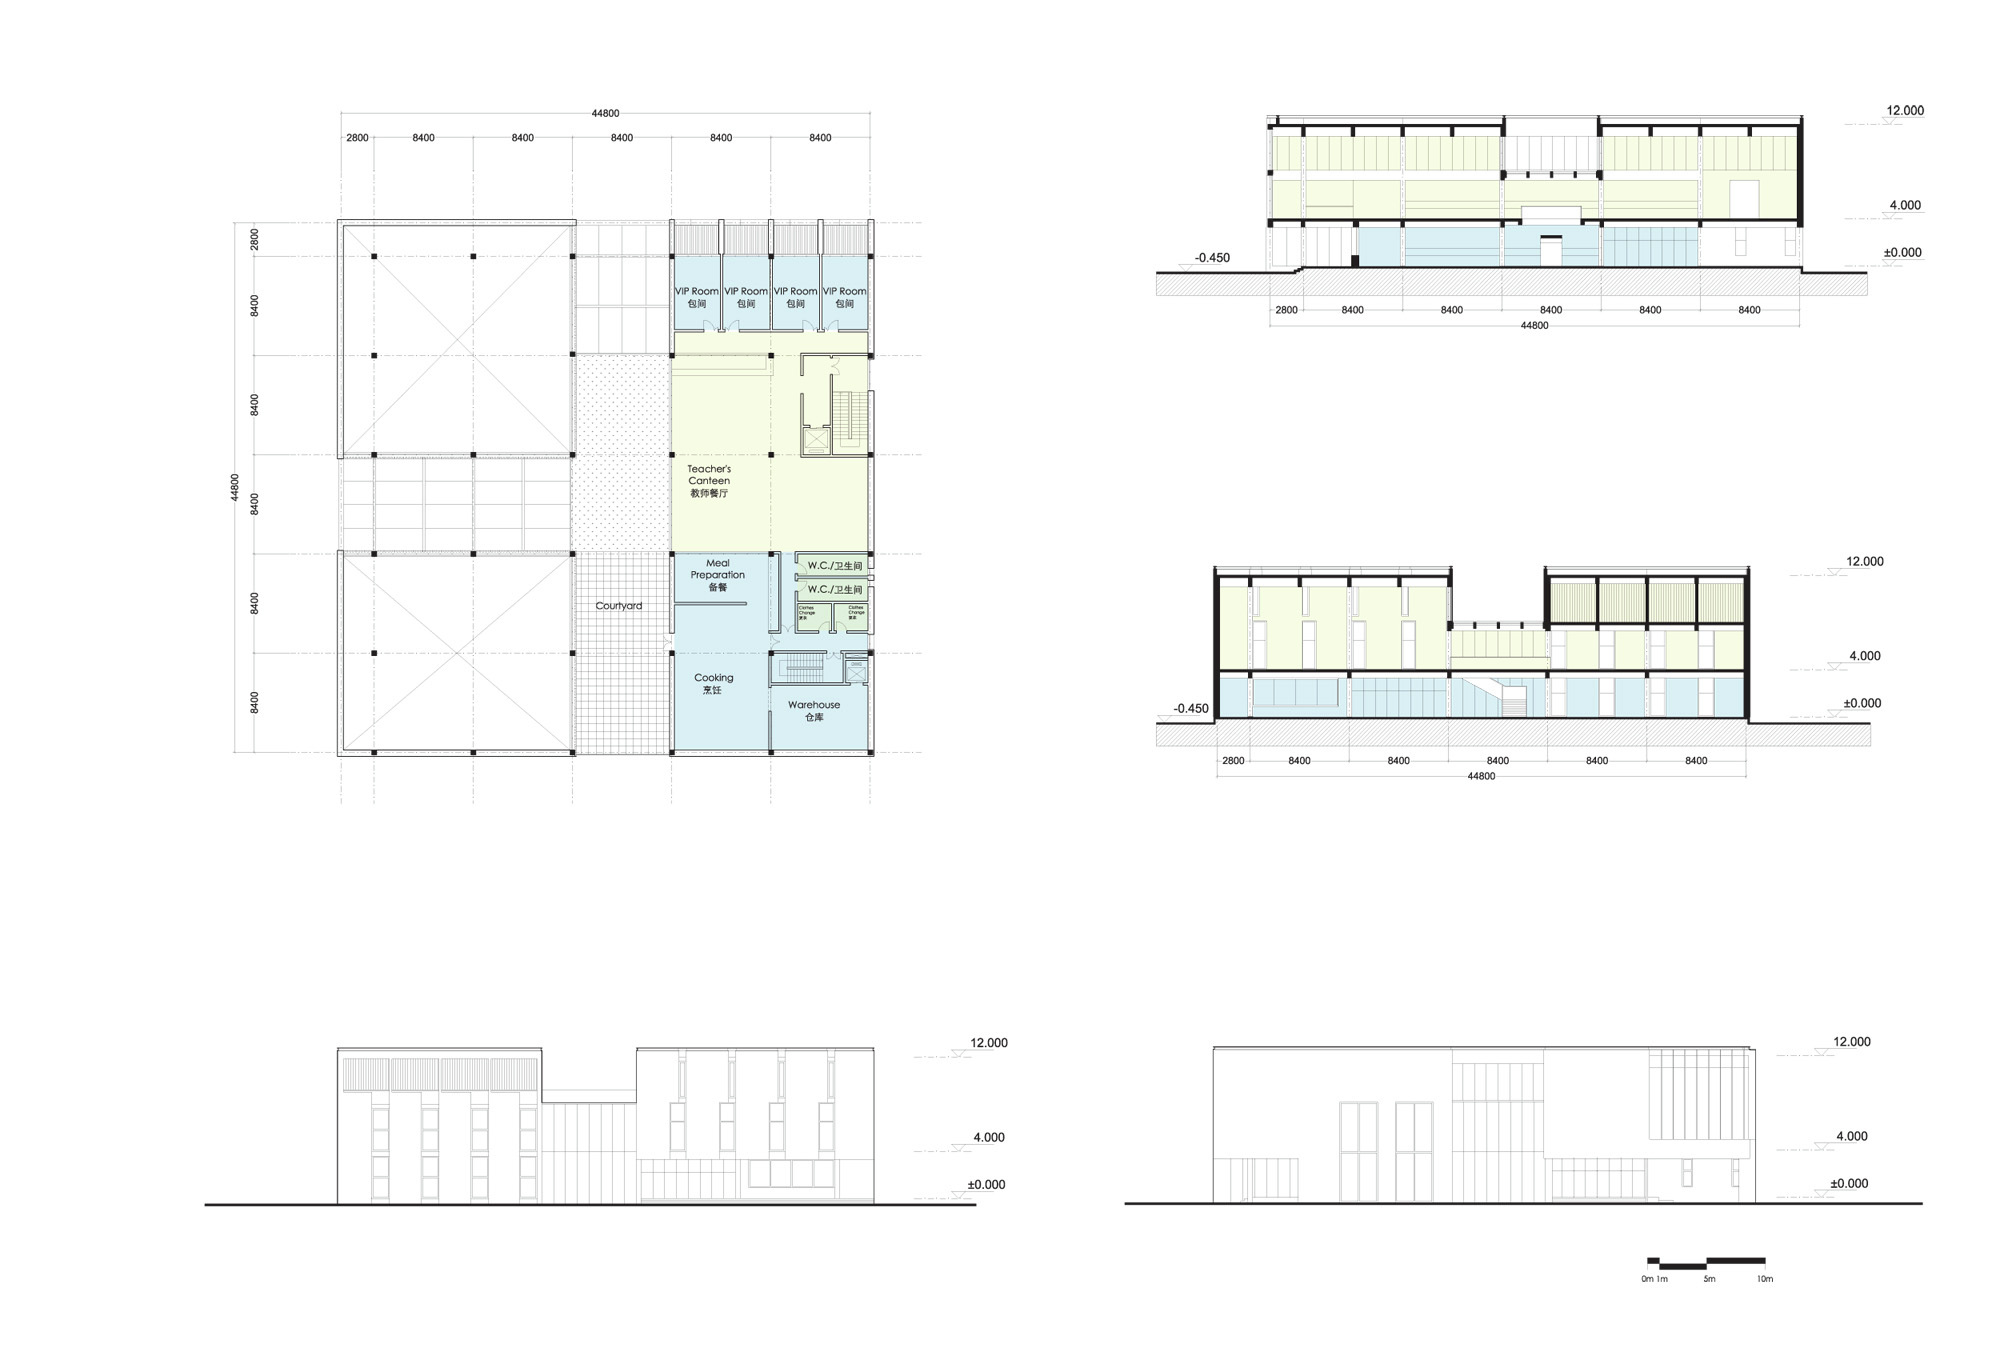 Canteen plan elevation and section